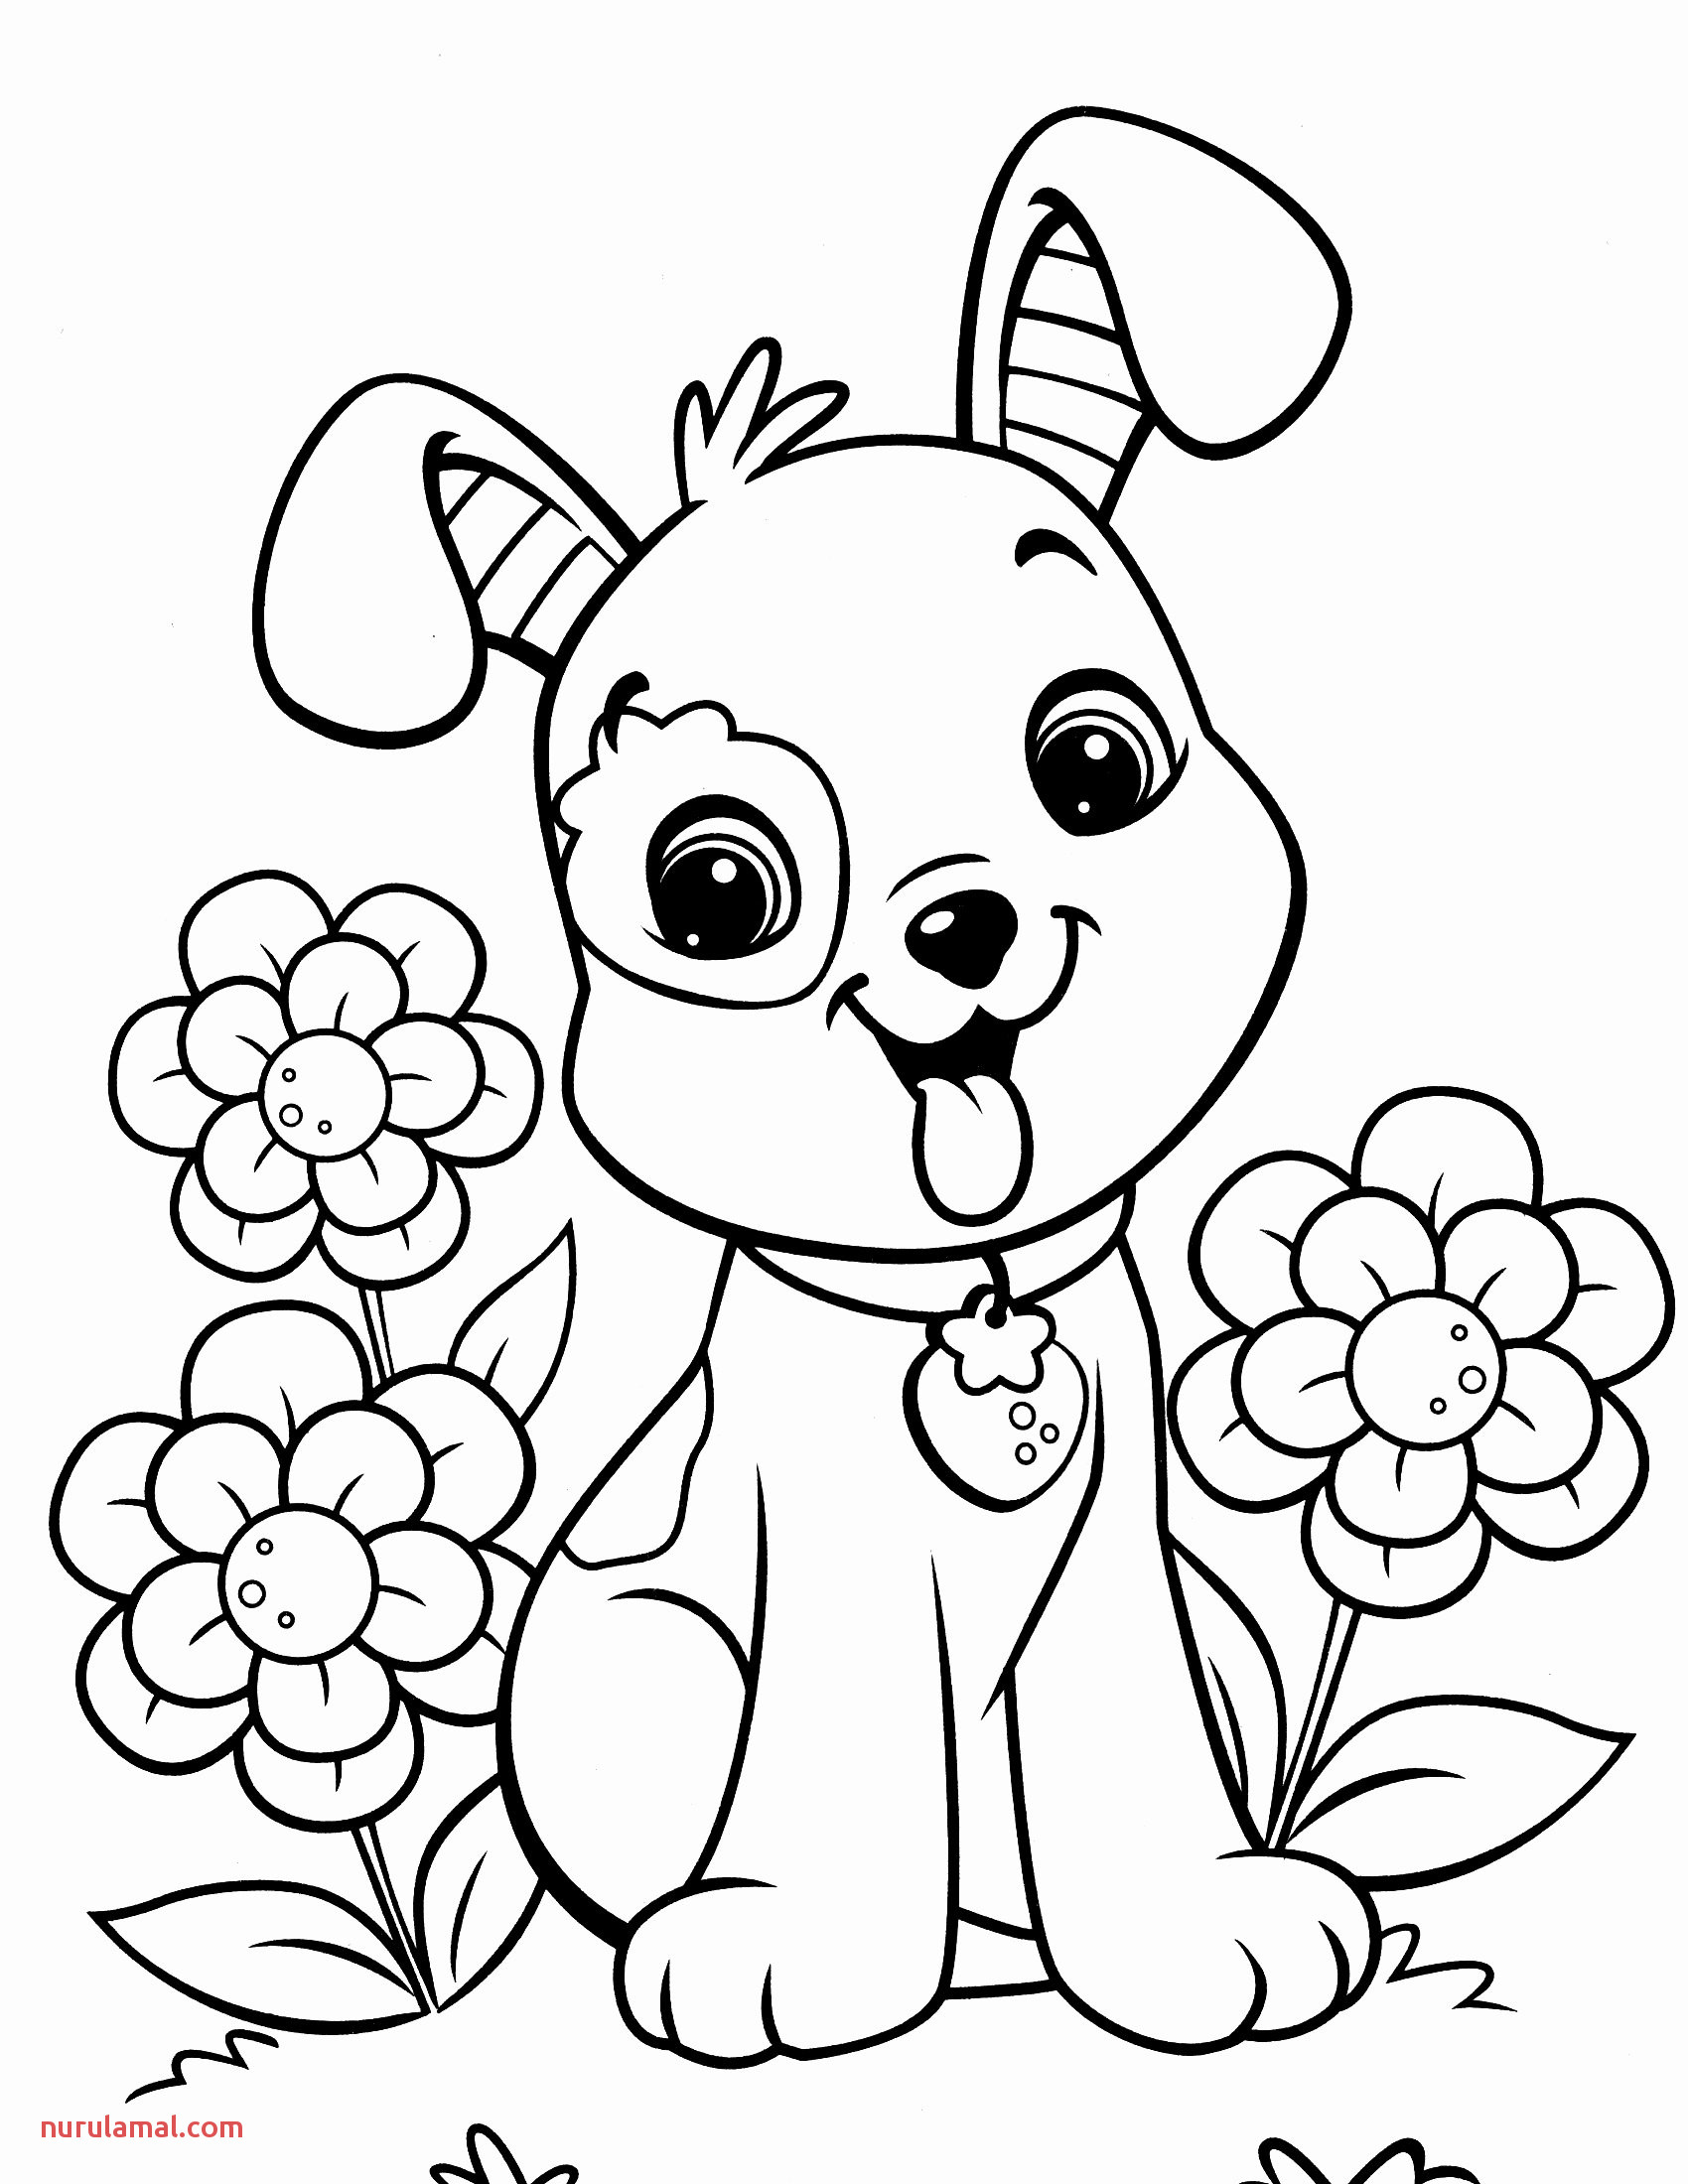 Printable Dog Coloring Pages Awesome Free Cute Dog Coloring